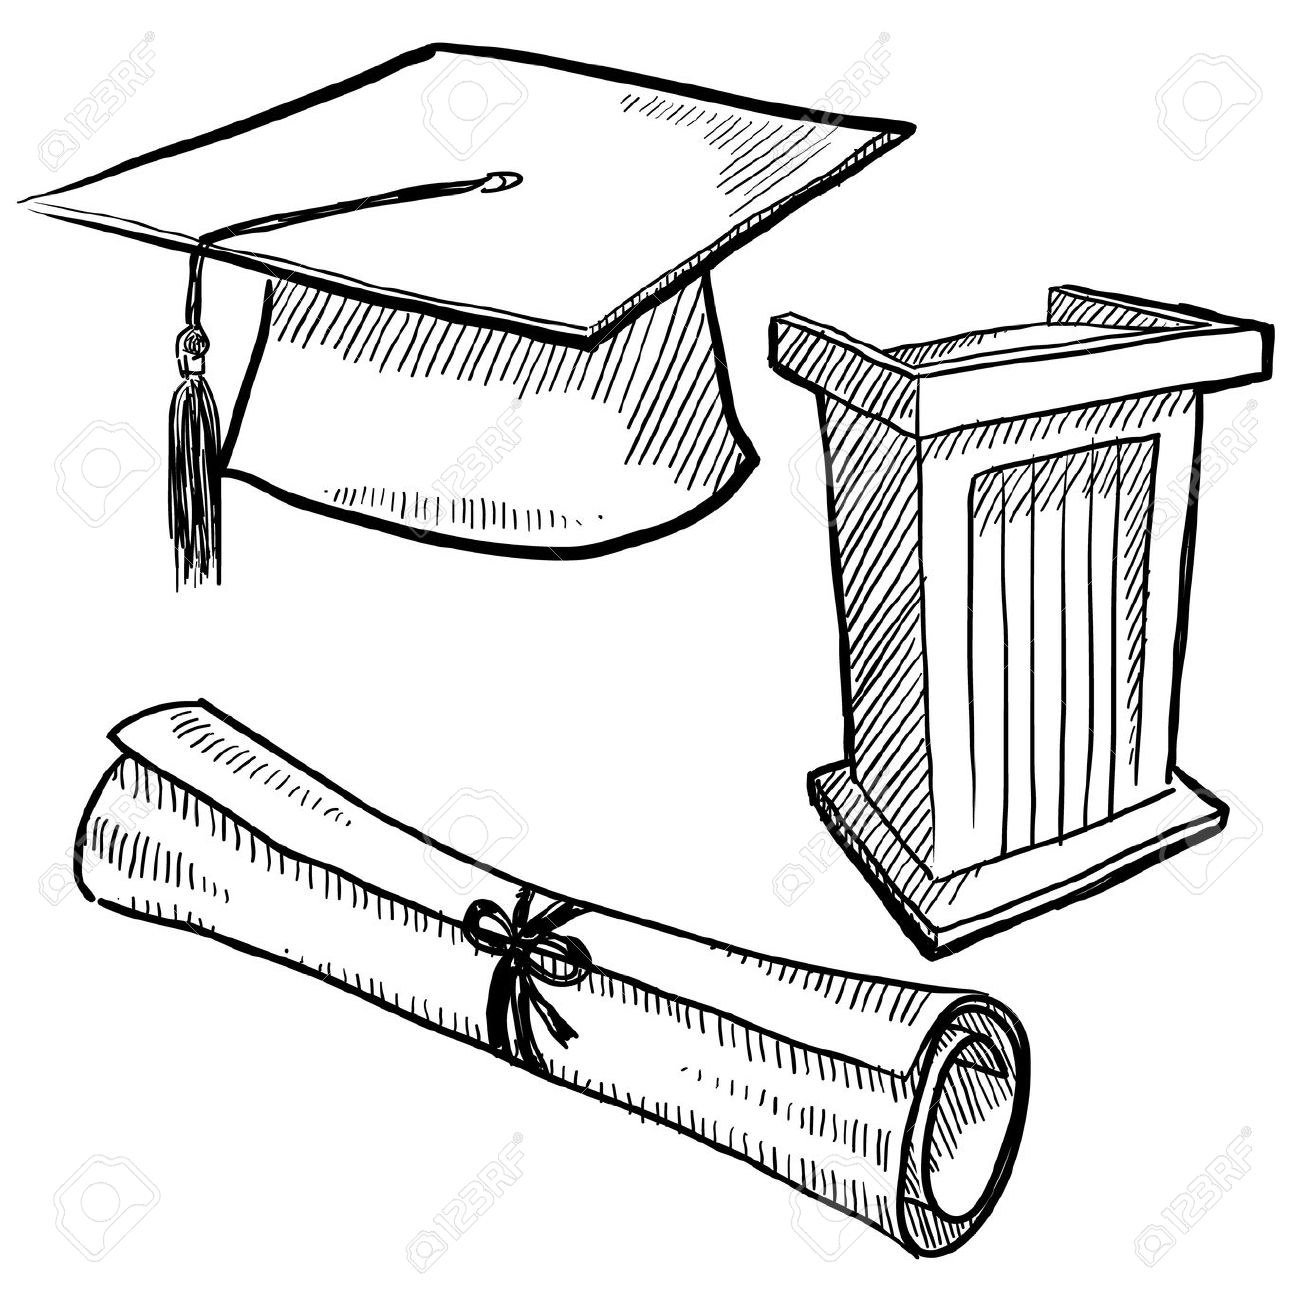 1300x1300 Doodle Style Graduation Or School Vector Illustration With Cap